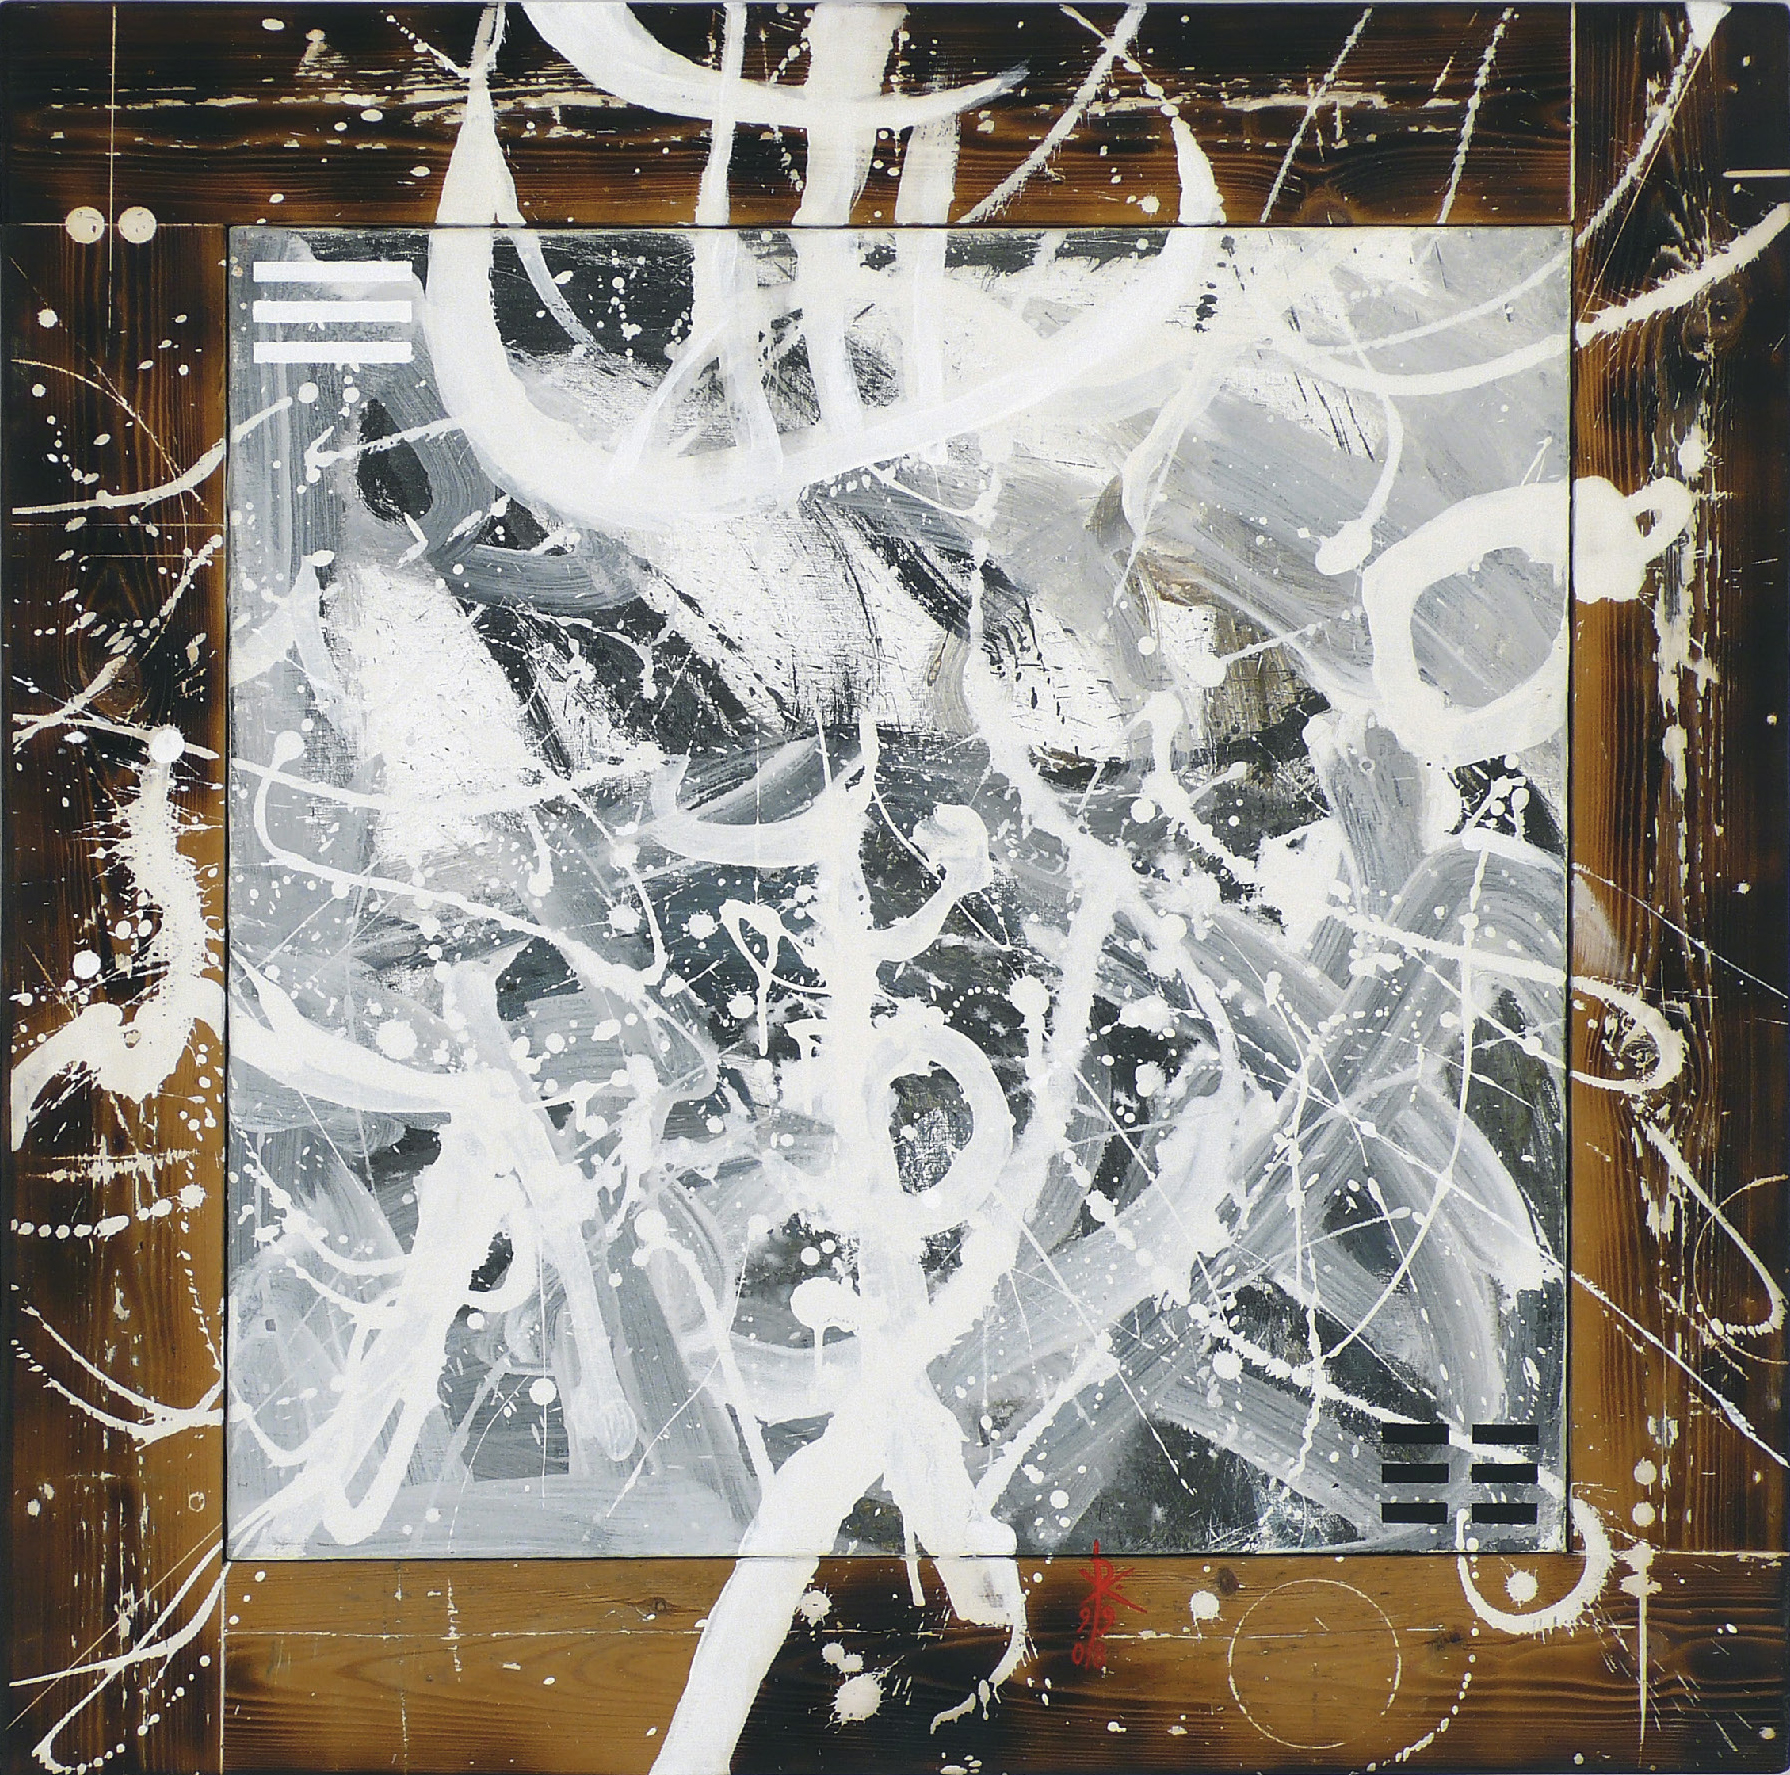 Lot 33 - Kraus Roland (1942) Entre ciel et terre - Acrylic and mixed media on canvas and [...]